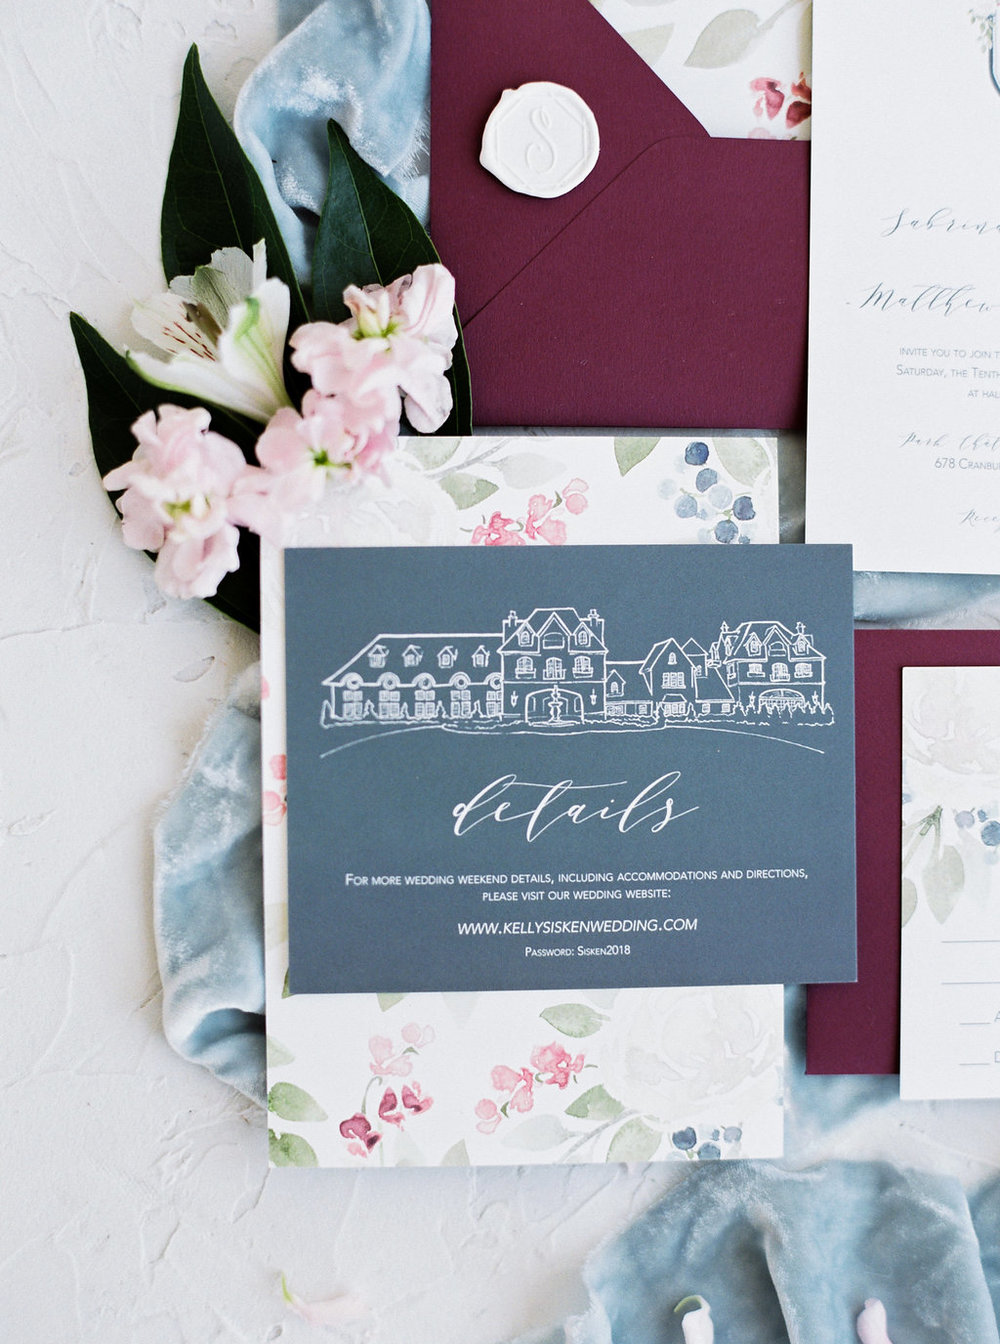 Park Chateau Wedding in New Jersey.  Watercolor details and wedding venue illustration on burgundy and slate blue wedding invitations || Blushed Design, Wedding Invitations and Fine Art Portraits